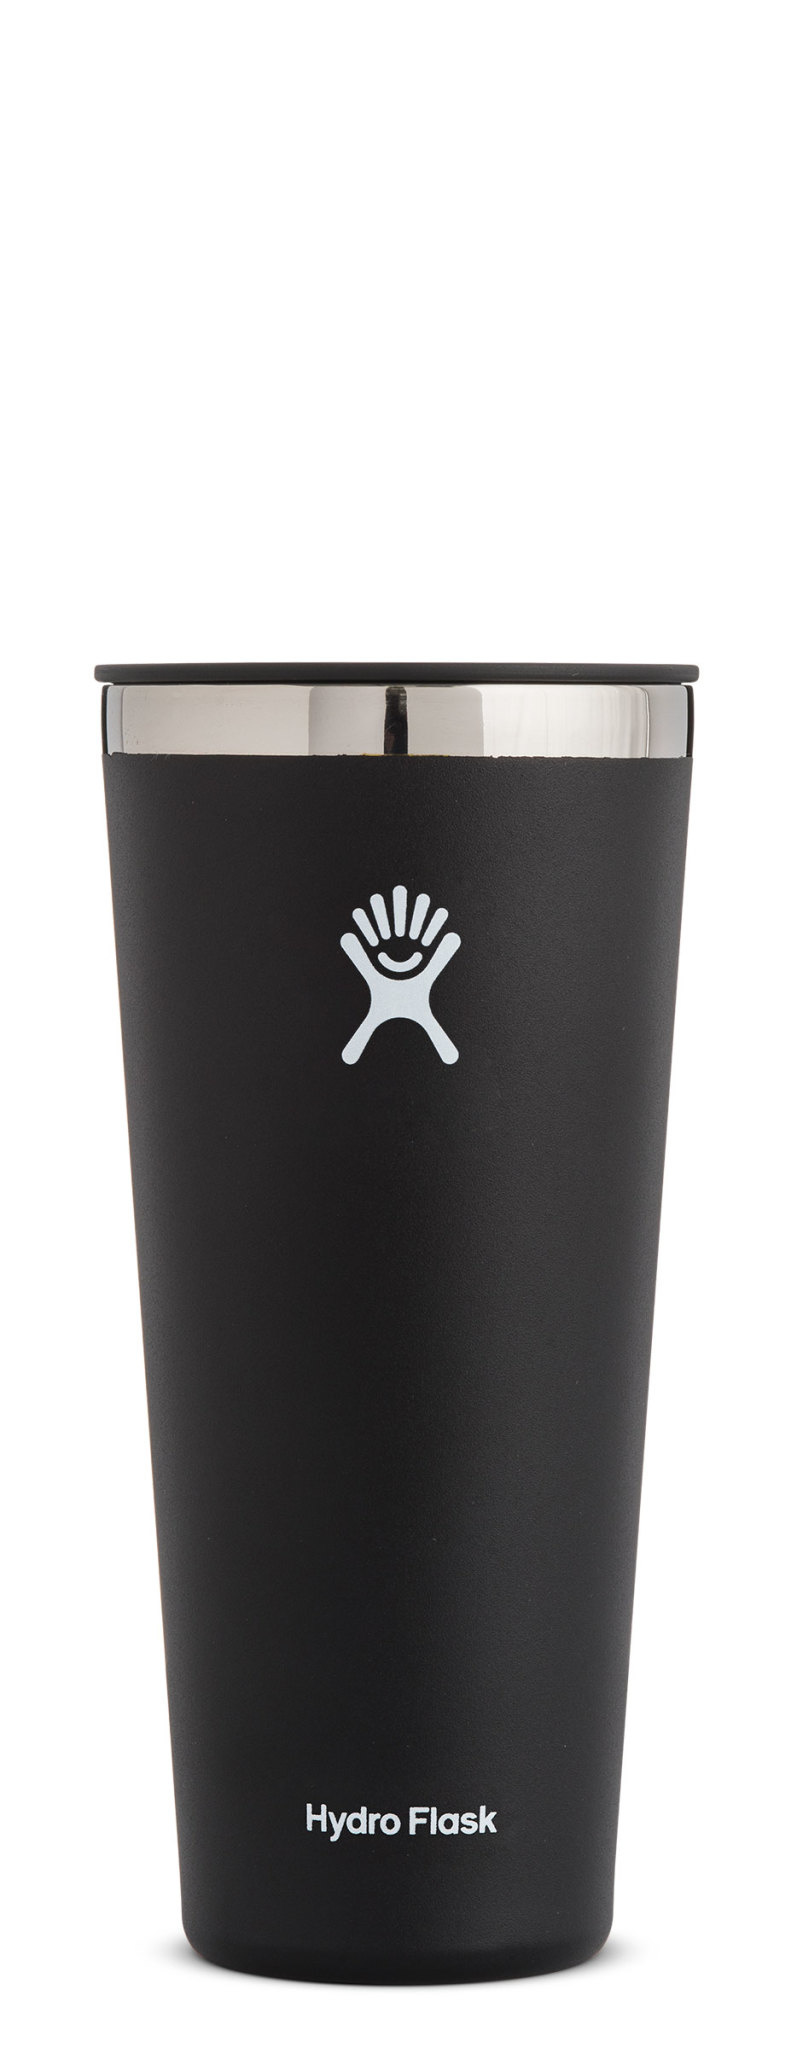 Hydro Flask 32oz Tumbler-2